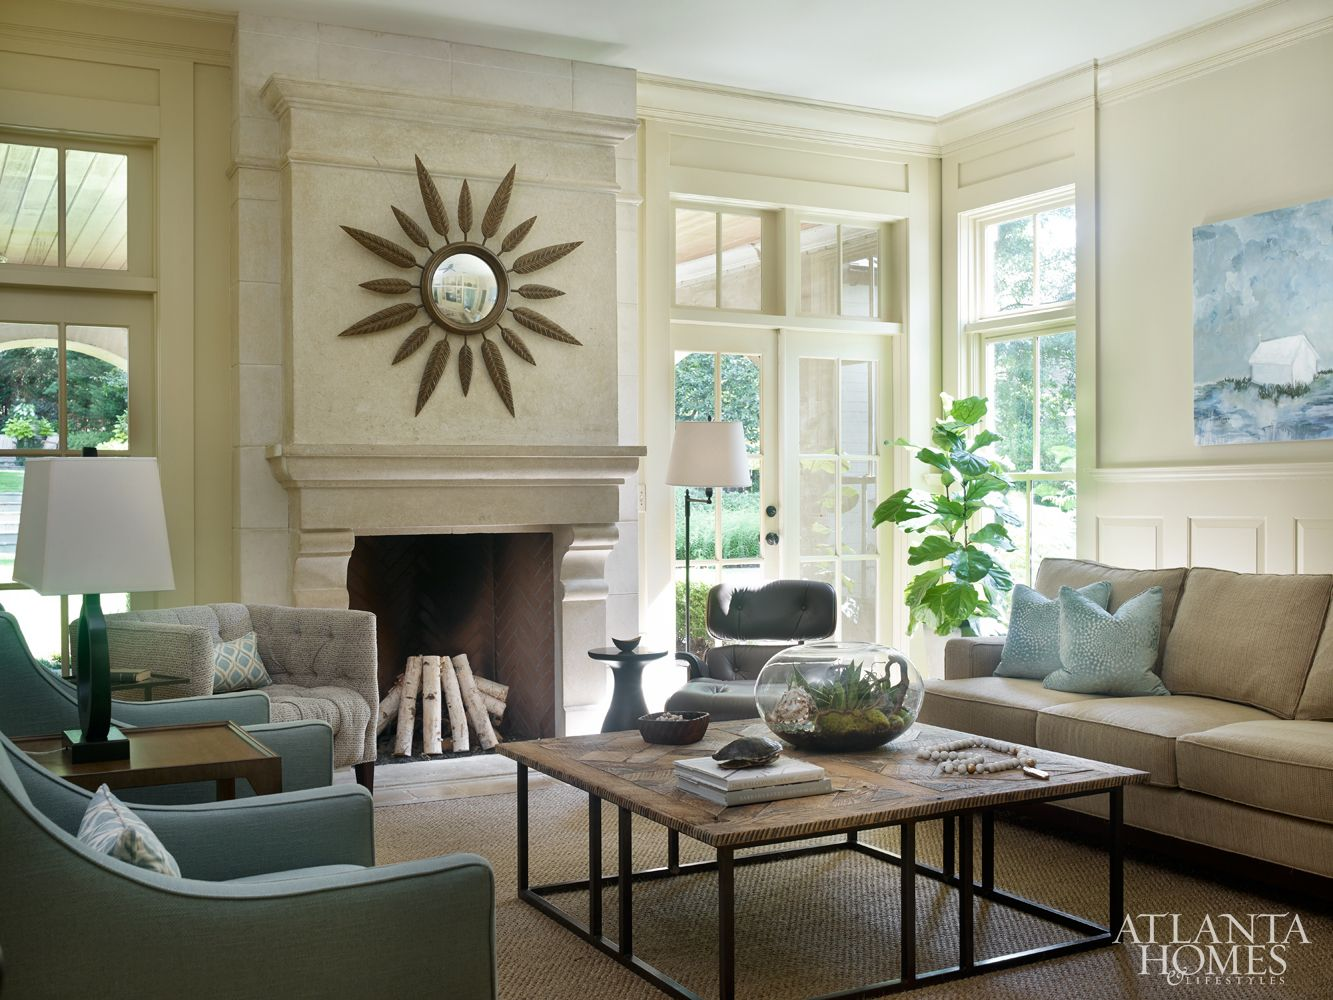 in the light filled family room bosbyshell selected streamlined furnishings